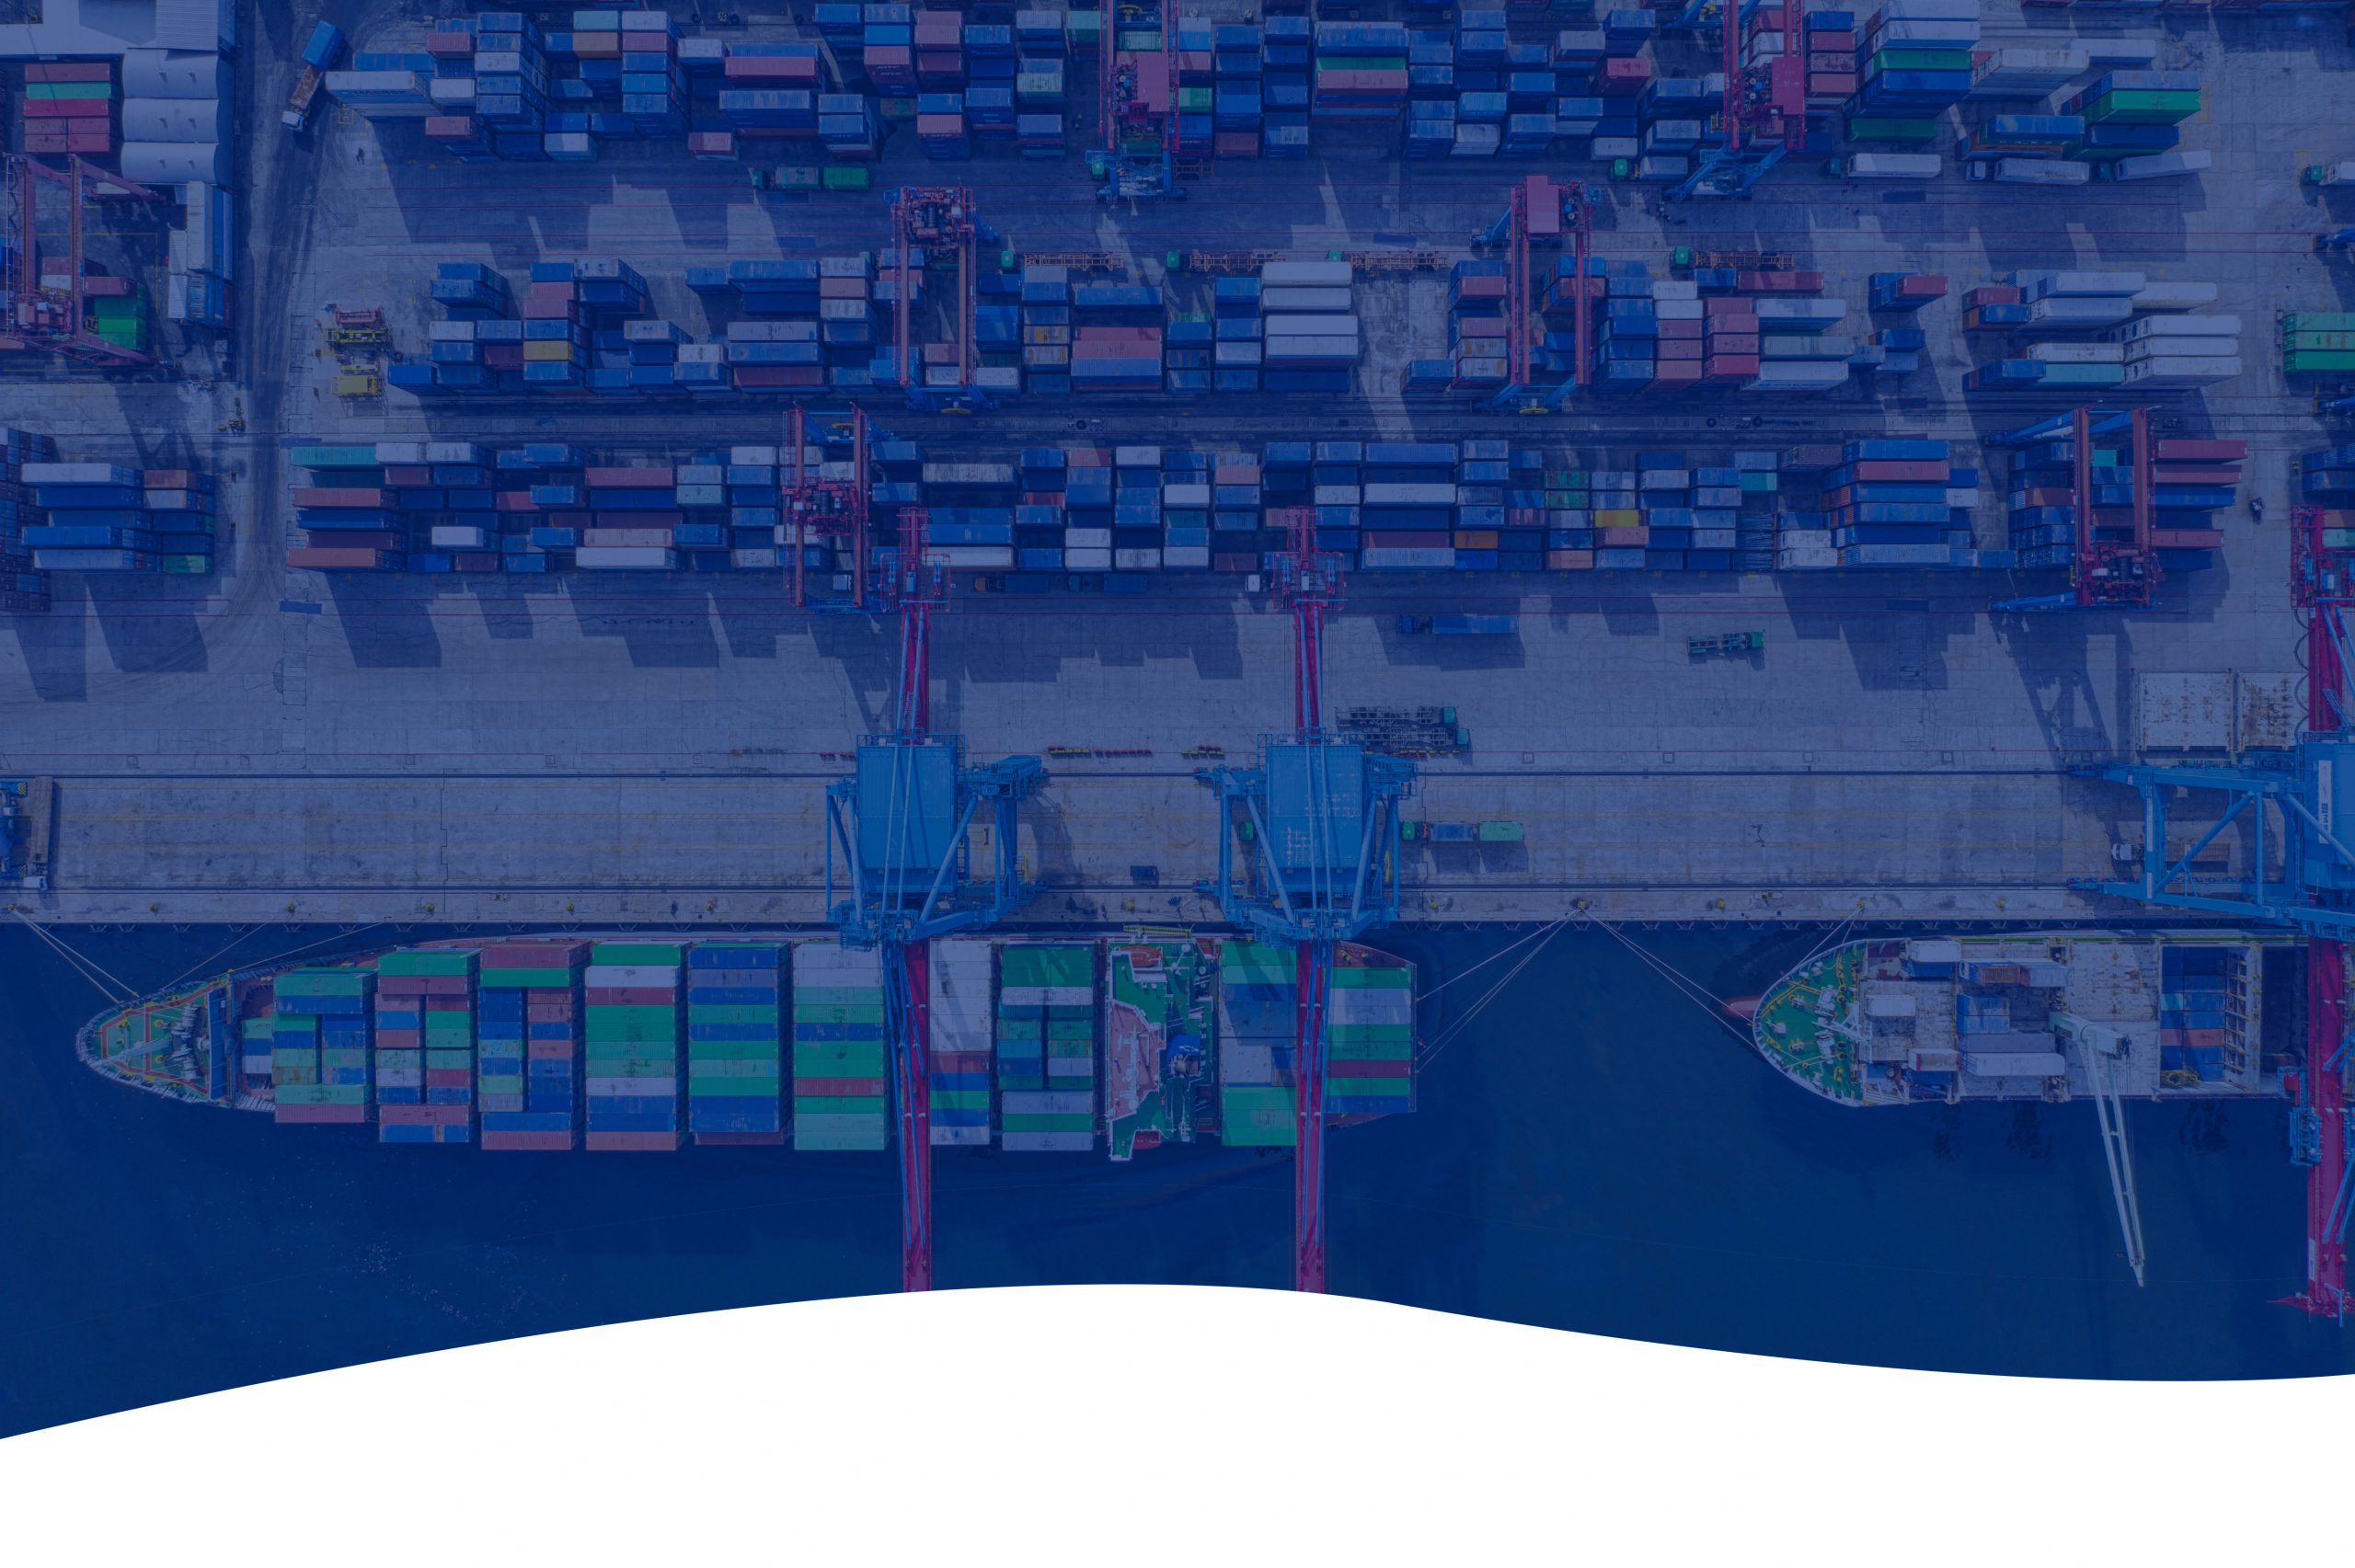 SDSD - Maritime Fleet Management Software & Application Development